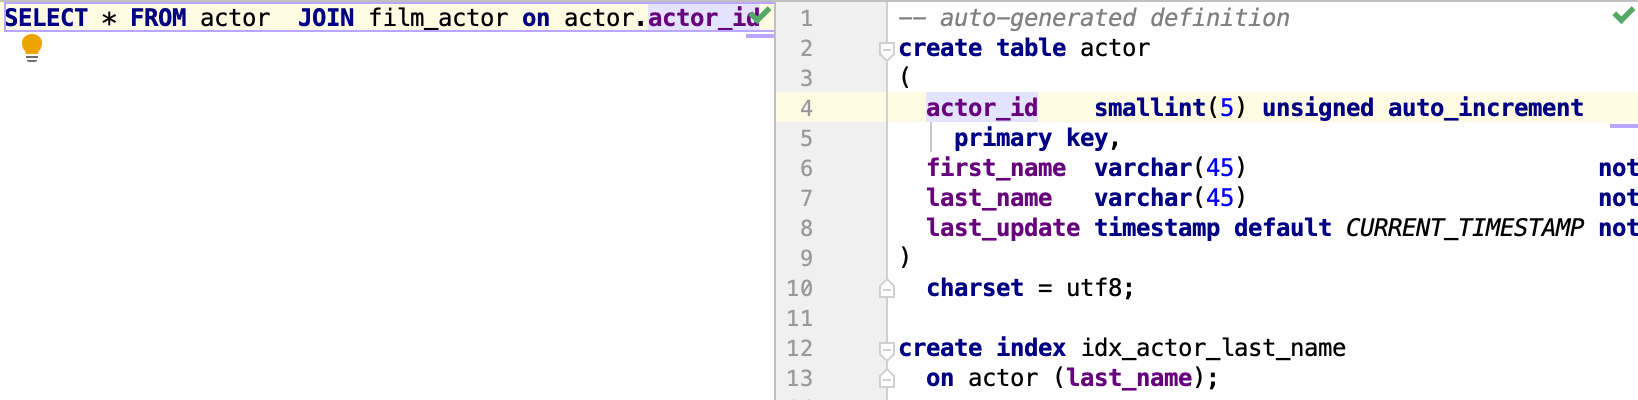 Open a definition in the DDL editor